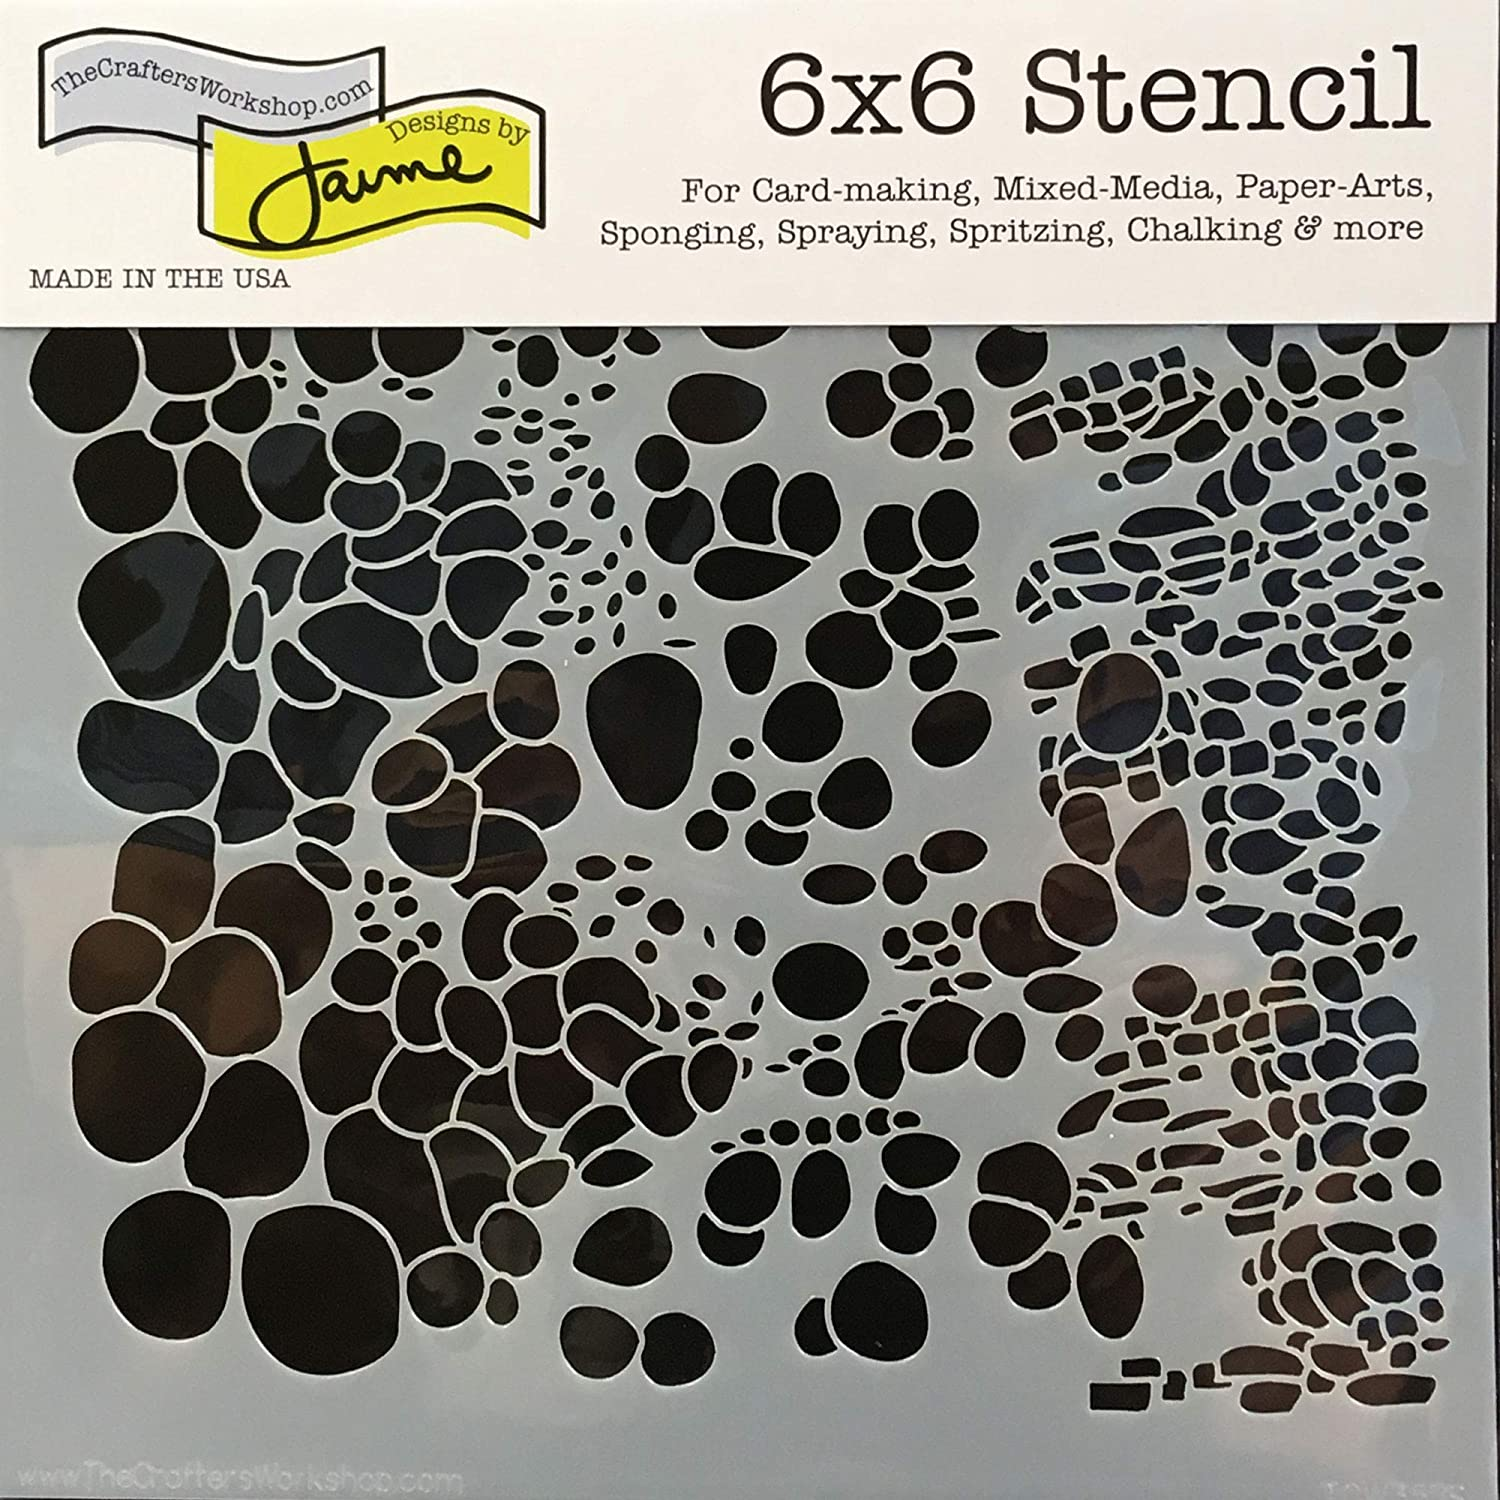 Reusable Stenciling Templates for Art Journaling and Scrapbooking Crafters Workshop Stencil 2 Pack Mixed Media 2pack Aspen Trees//Reversed Branches, 6 X 6